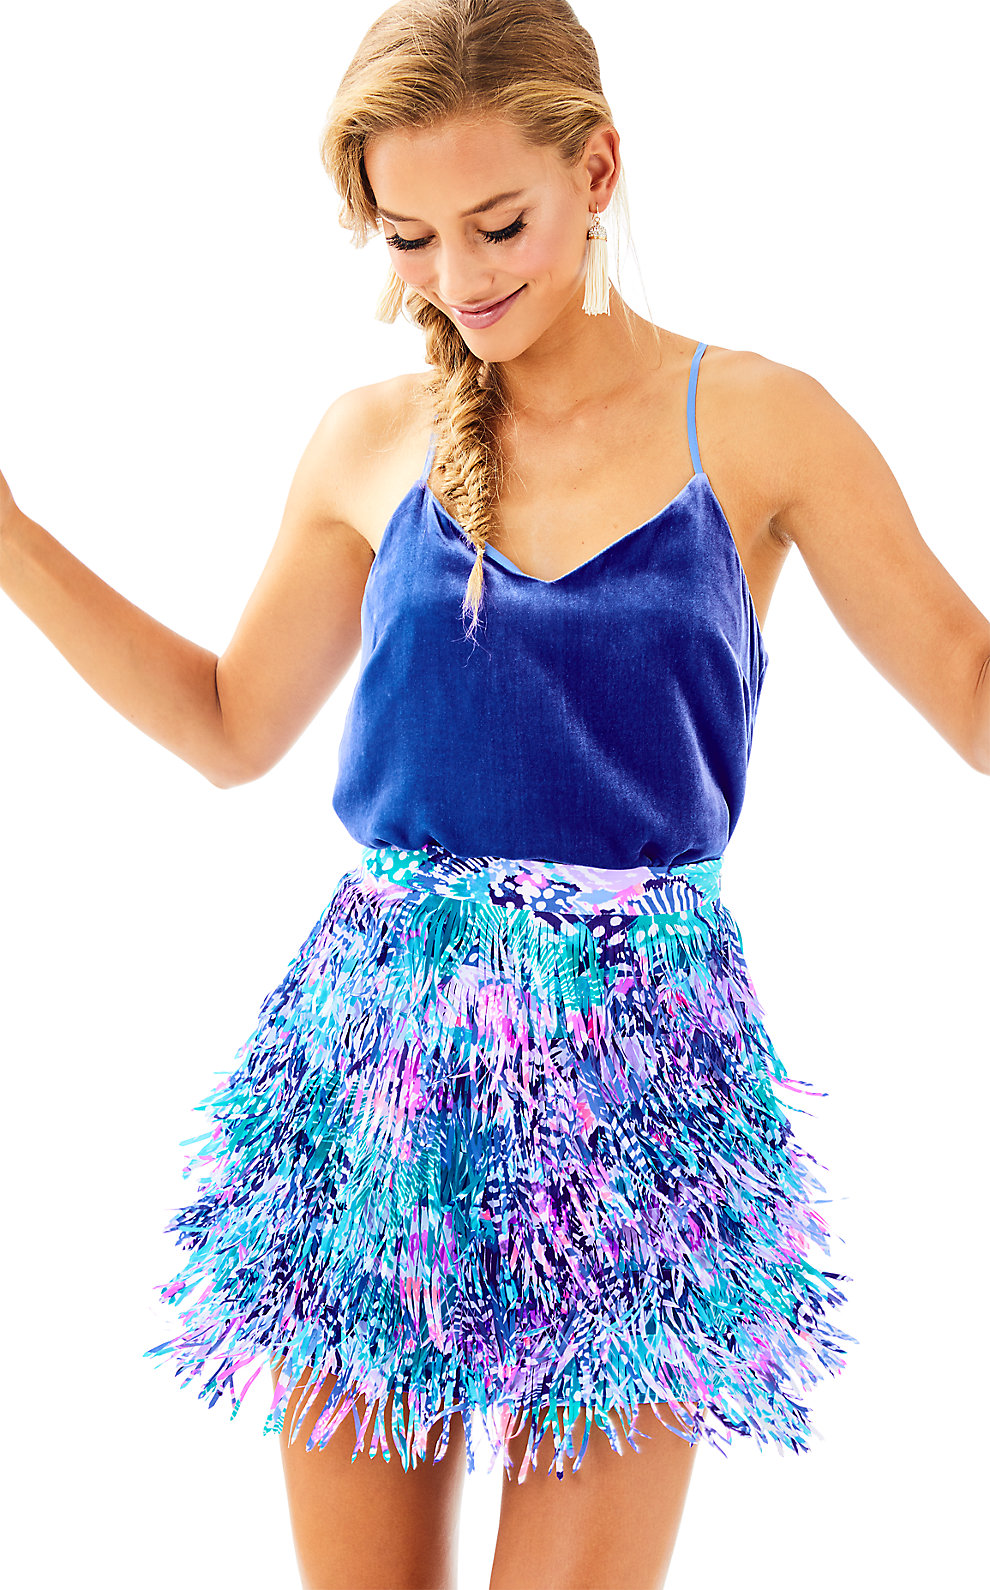 Lilly Pulitzer Kelsie Skirt